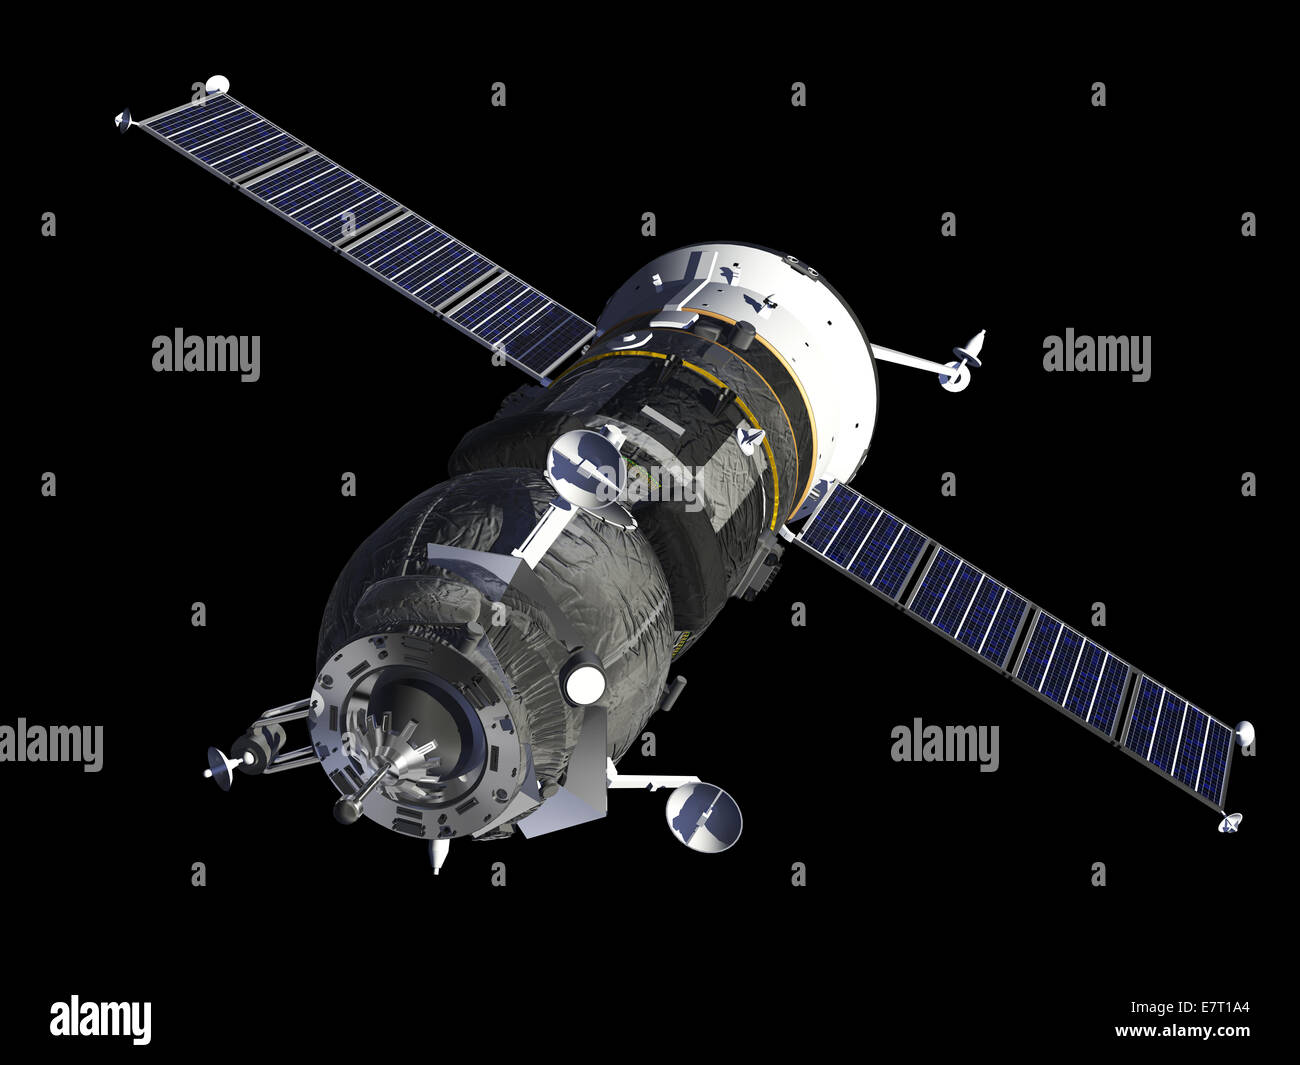 Spacecraft 'Progress' - Stock Image